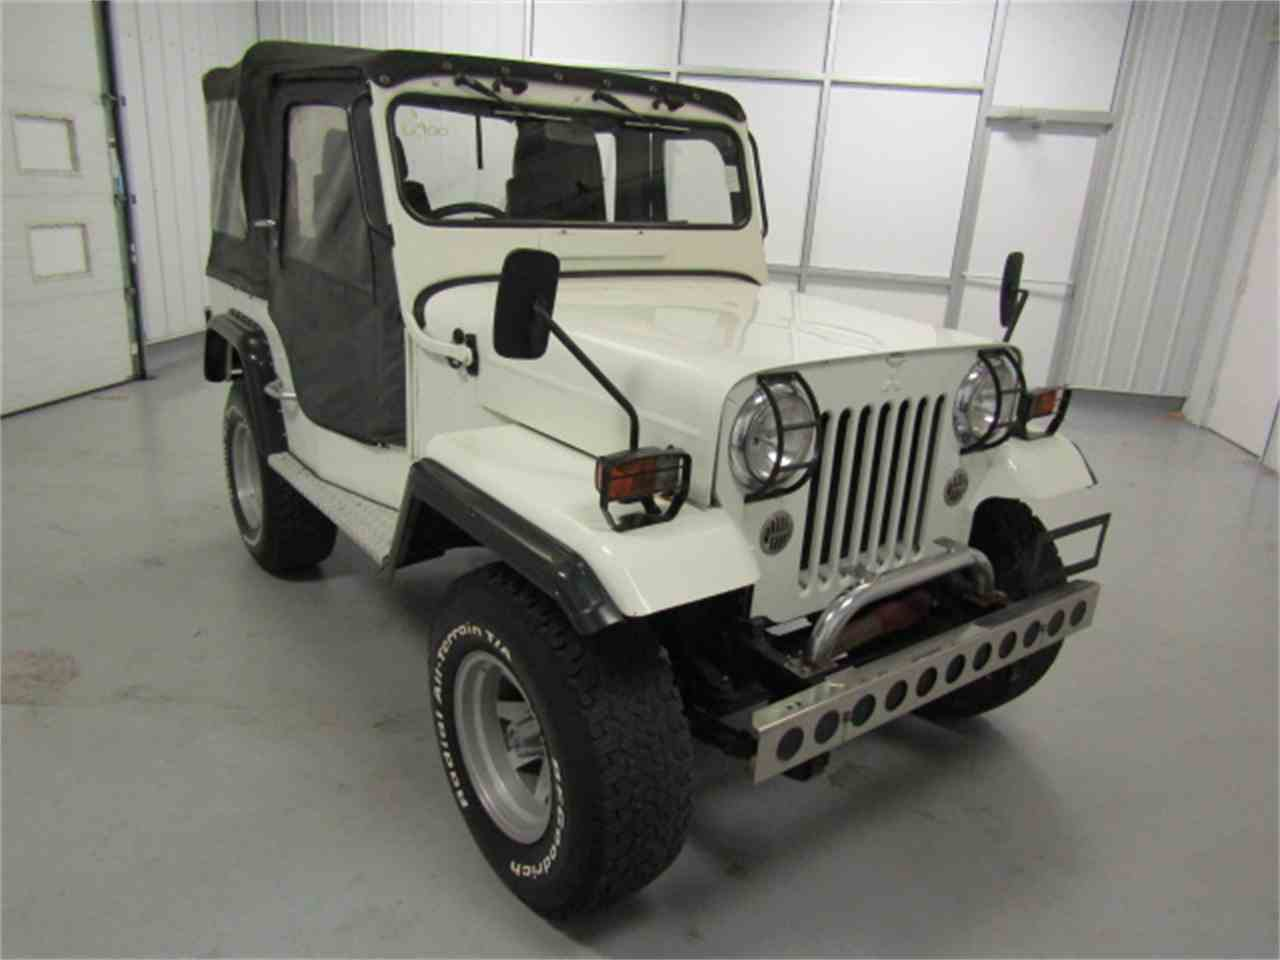 Large Picture of '91 Jeep located in Virginia - $6,900.00 Offered by Duncan Imports & Classic Cars - KF6X